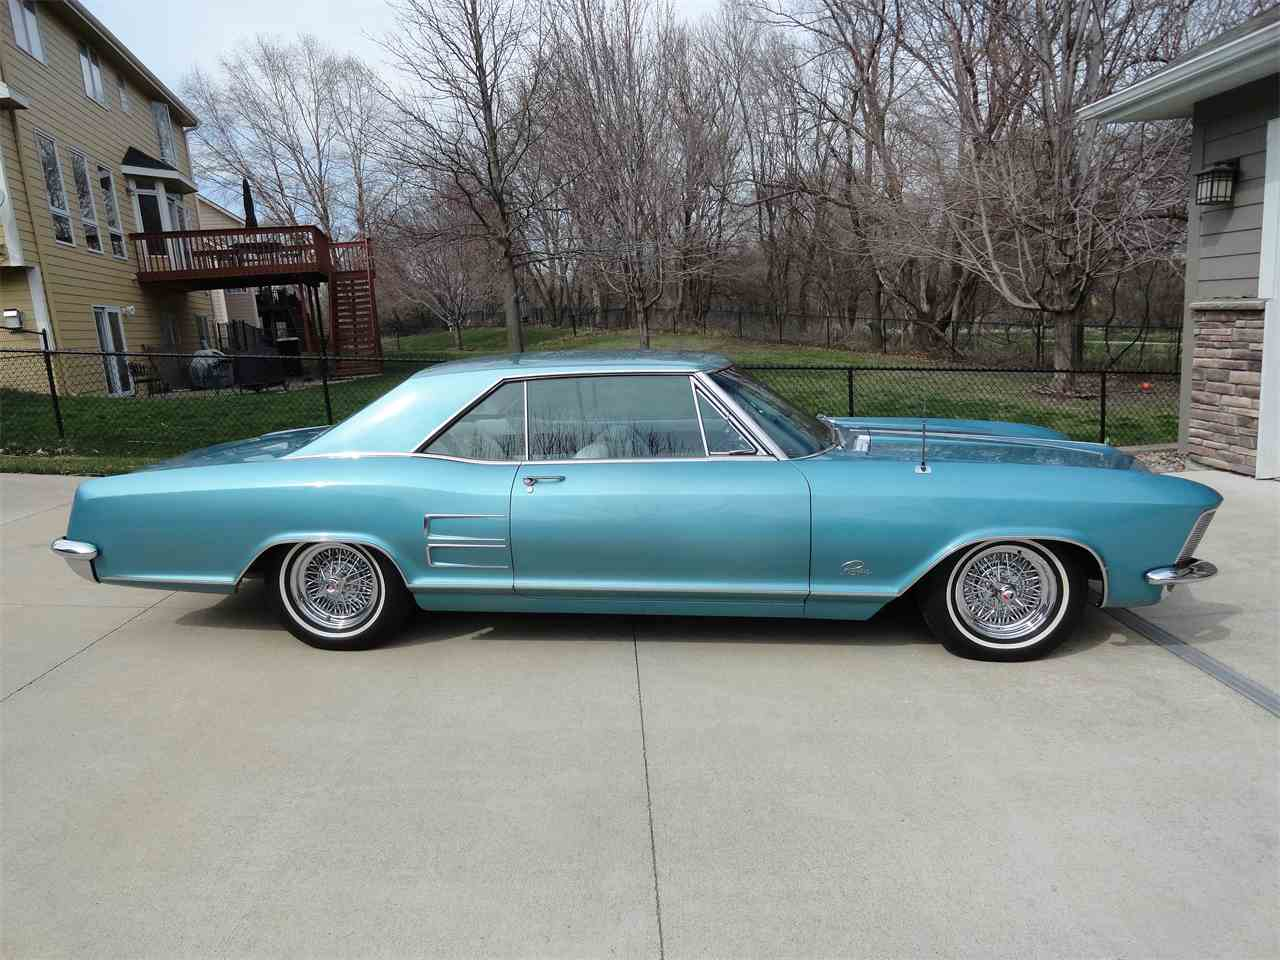 Large Picture of Classic '64 Buick Riviera - $31,500.00 Offered by a Private Seller - NCAV